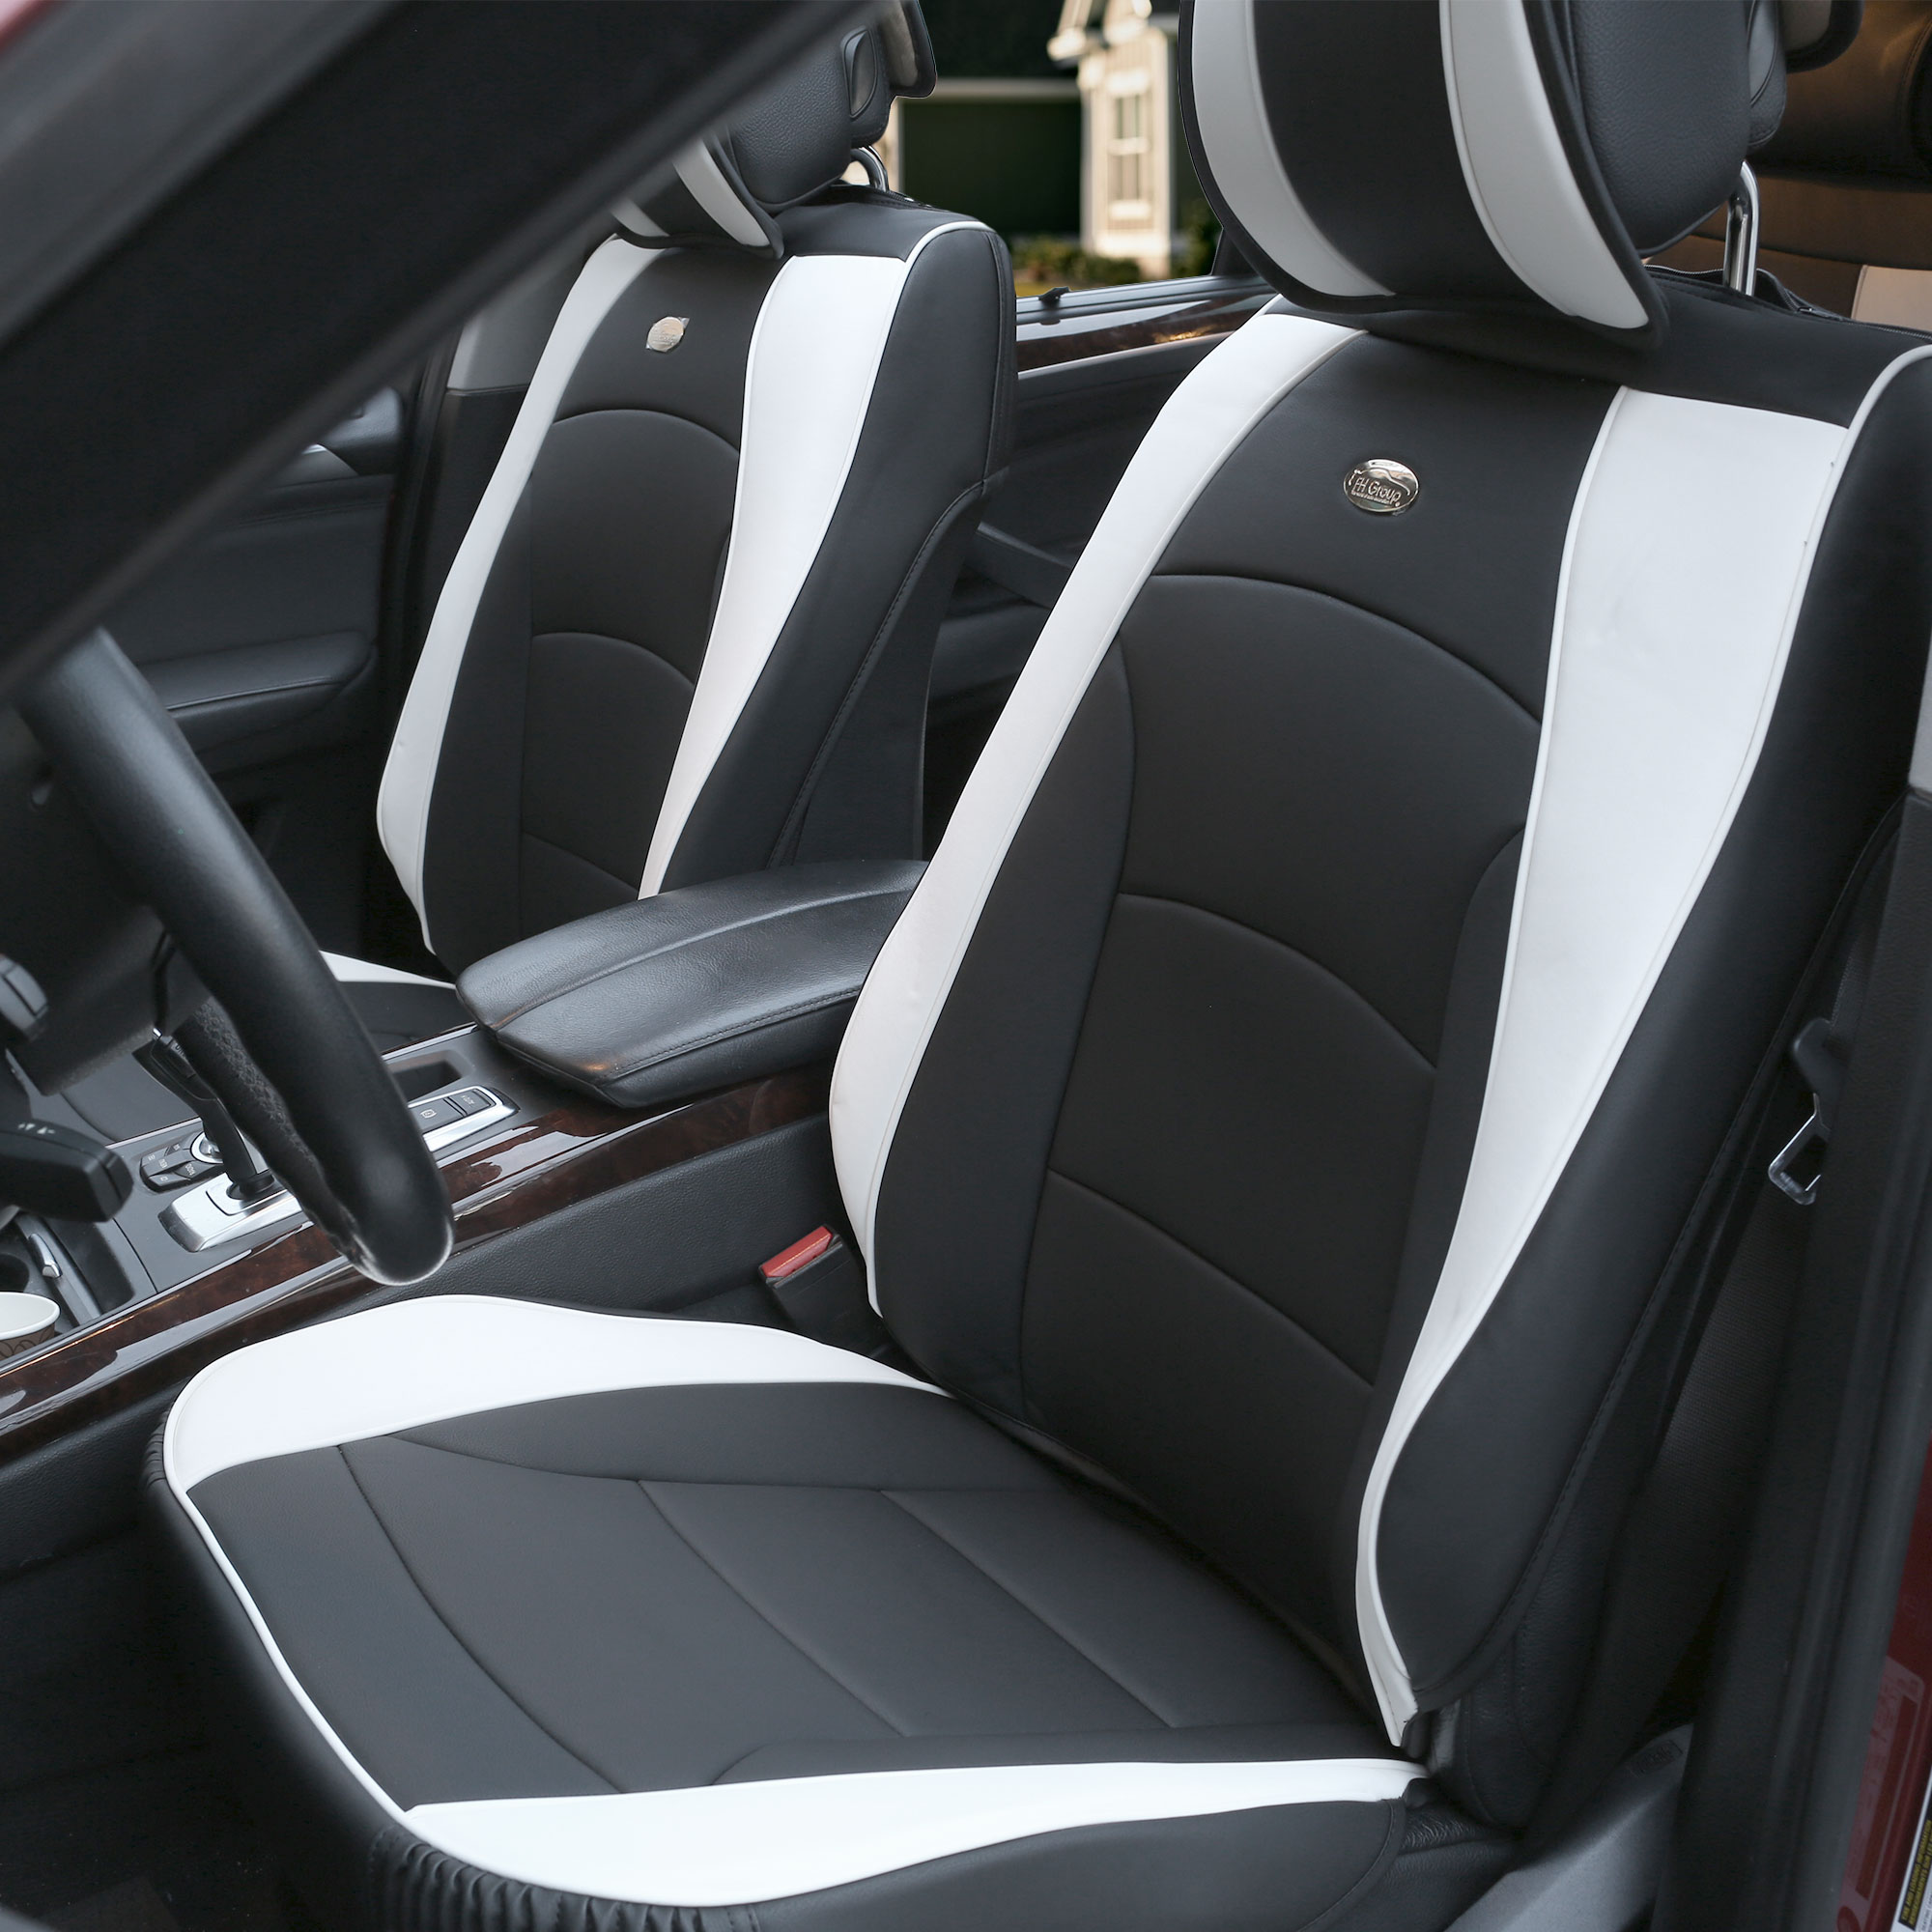 Material Top Quality Faux Leather Backed With High Density Foam And Non Slip Silicone Interior